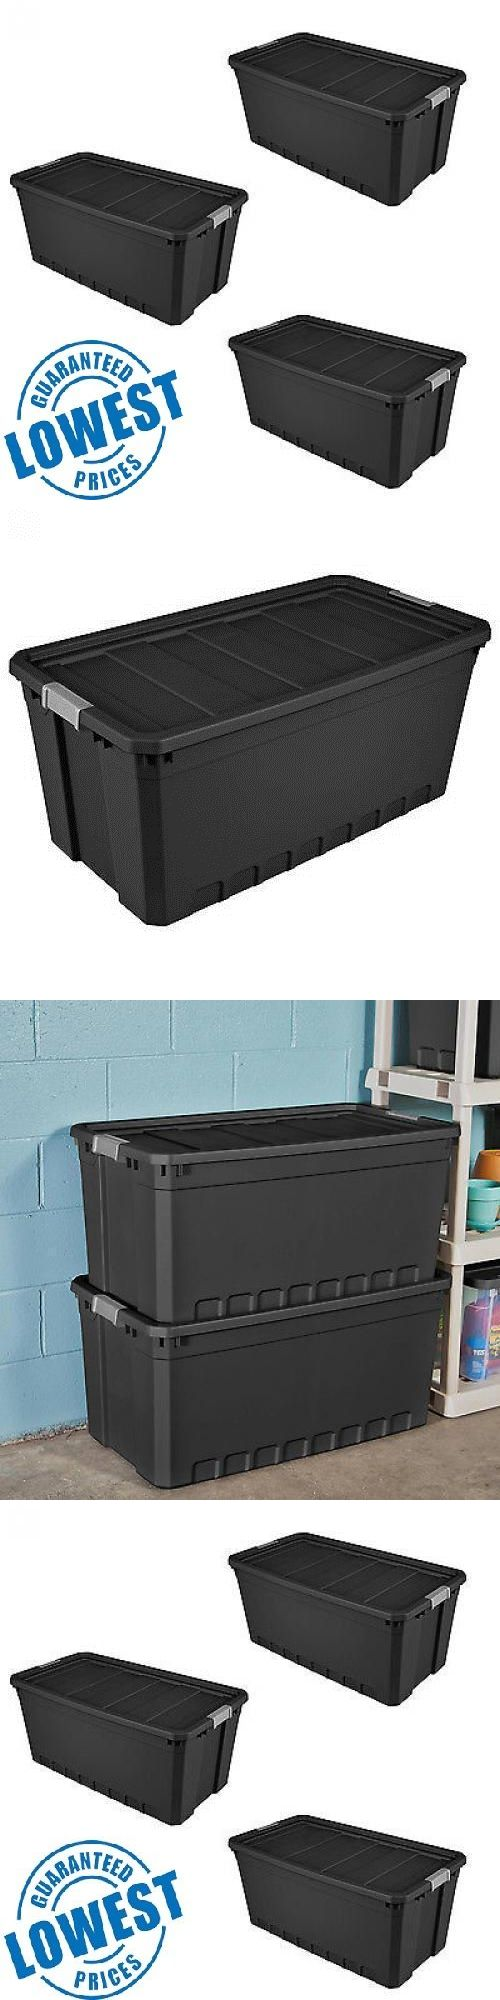 Storage Boxes 159897: 3Pc Plastic Storage Containers Large Box 50 Gallon Stacking Case Black Bin Boxes -> BUY IT NOW ONLY: $61.95 on eBay!